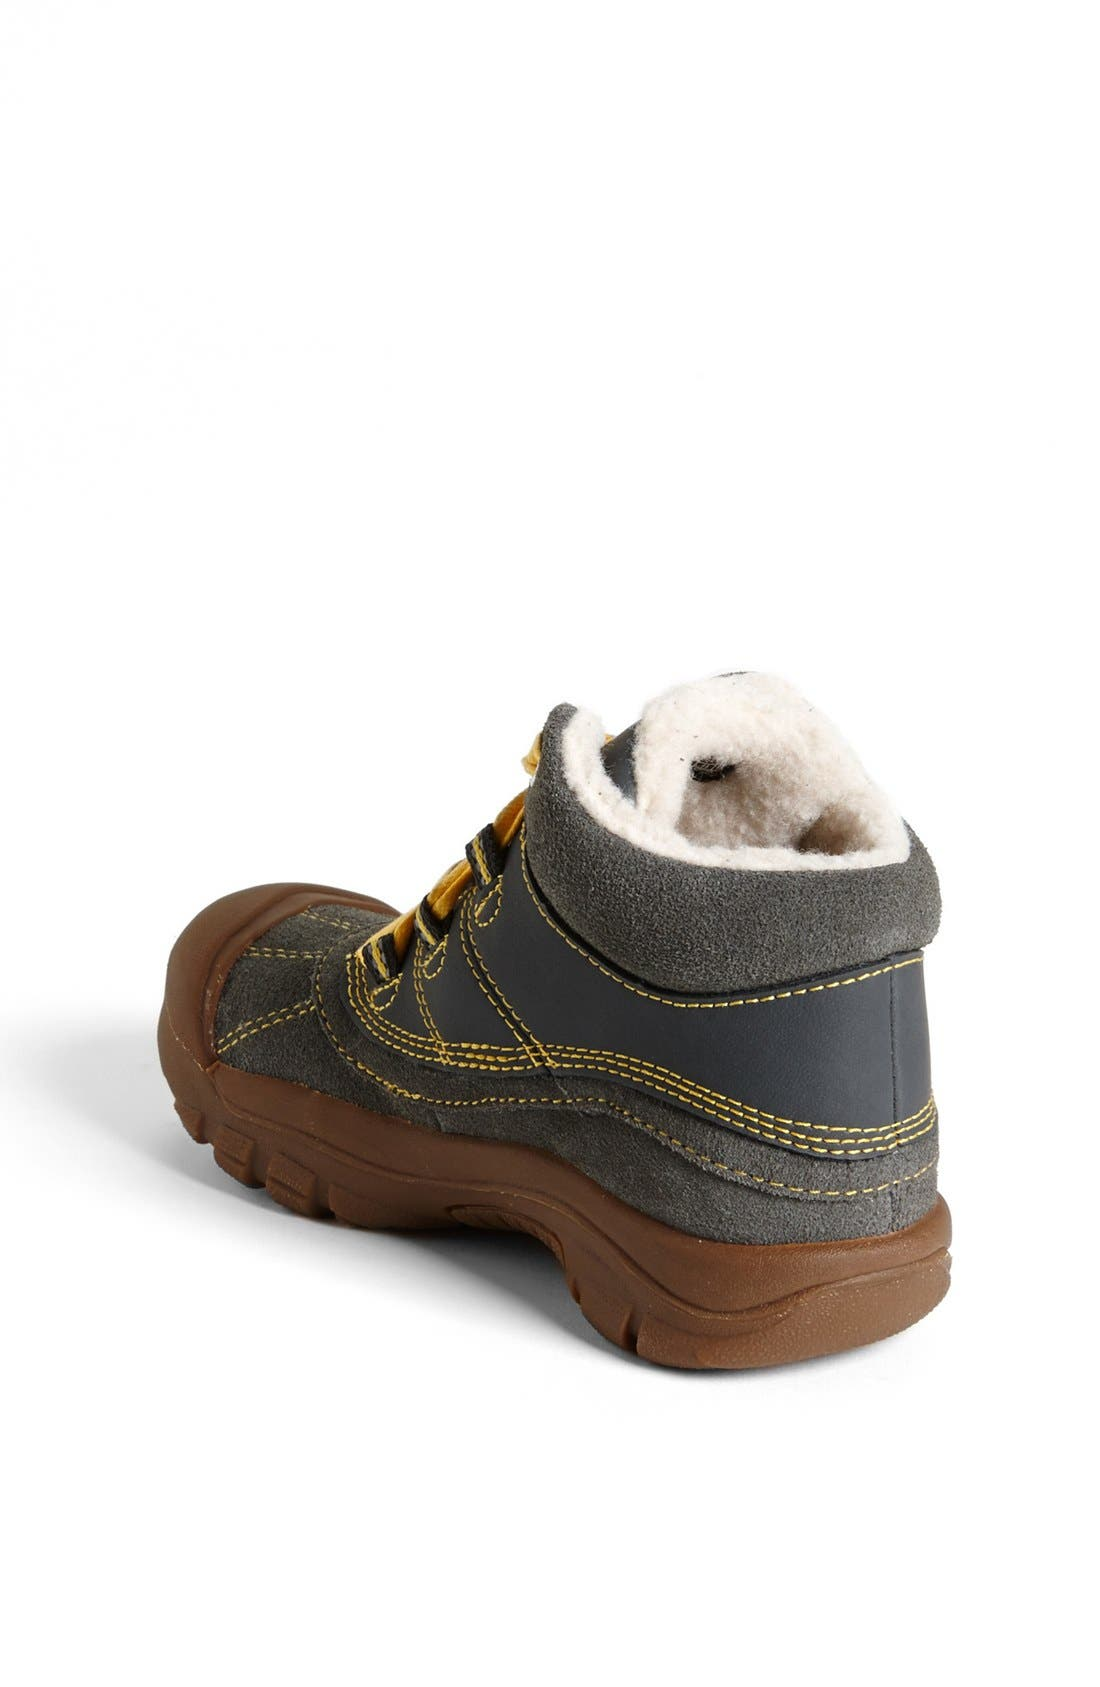 Alternate Image 2  - Keen 'Brady' Waterproof Boot (Toddler, Little Kid & Big Kid)